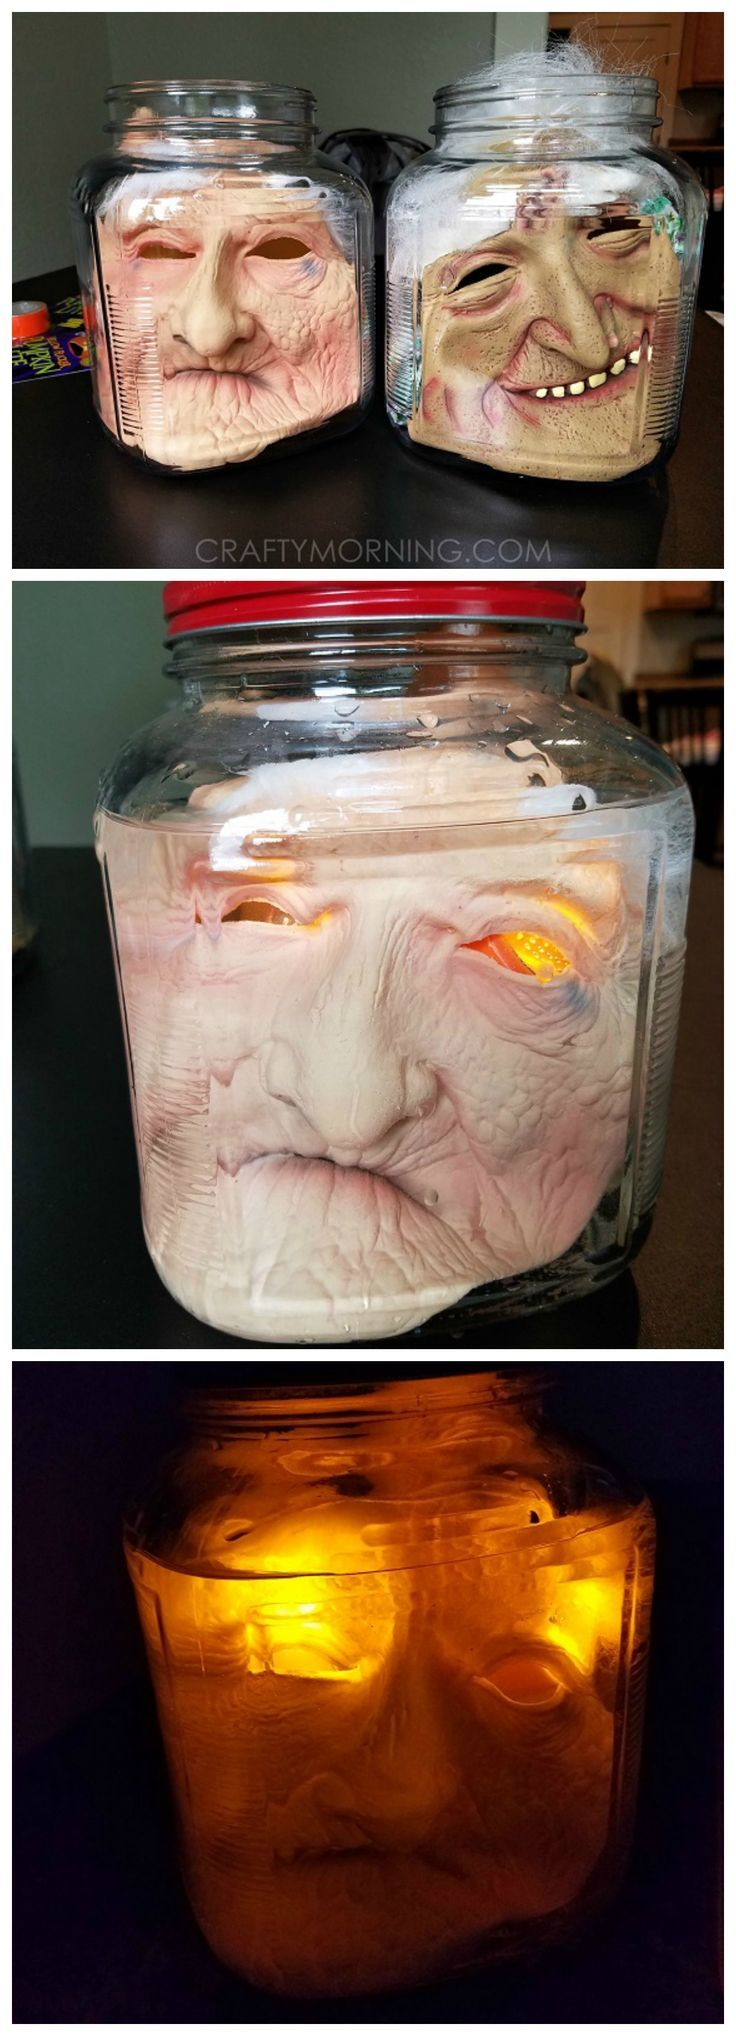 How to Make Creepy Heads in Jars - Crafty Morning